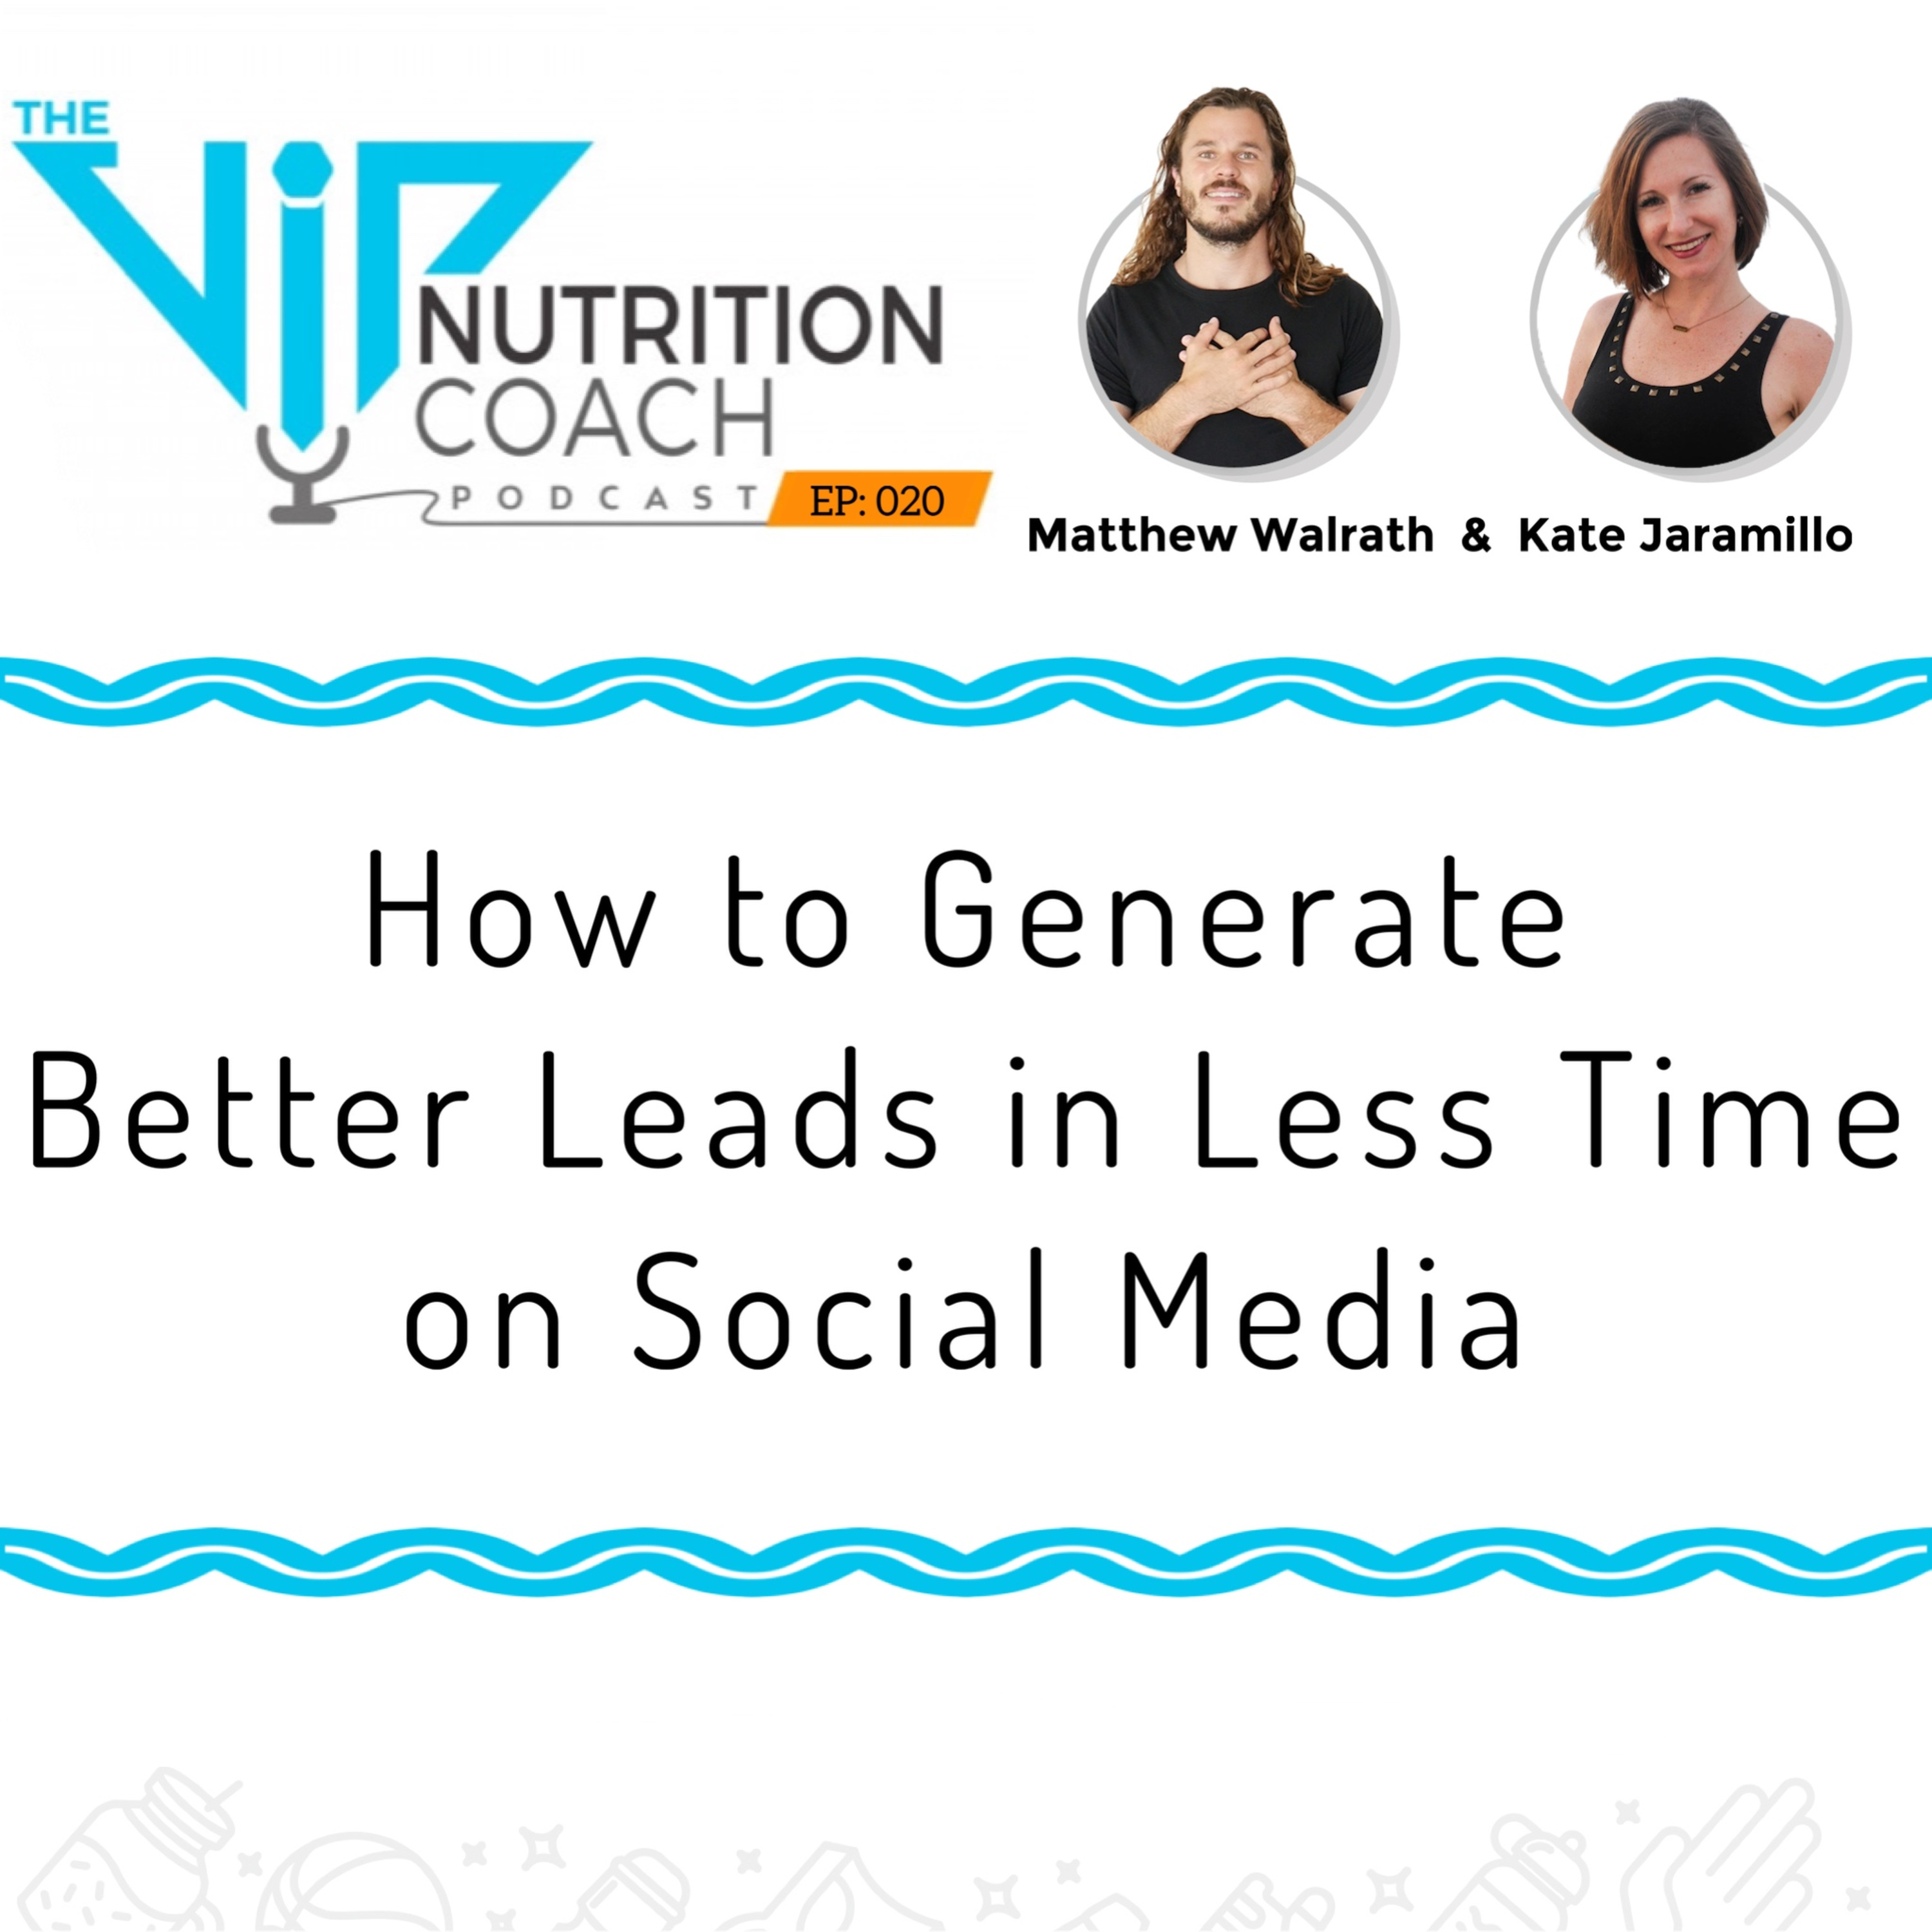 How to Generate Better Leads in Less Time on Social Media